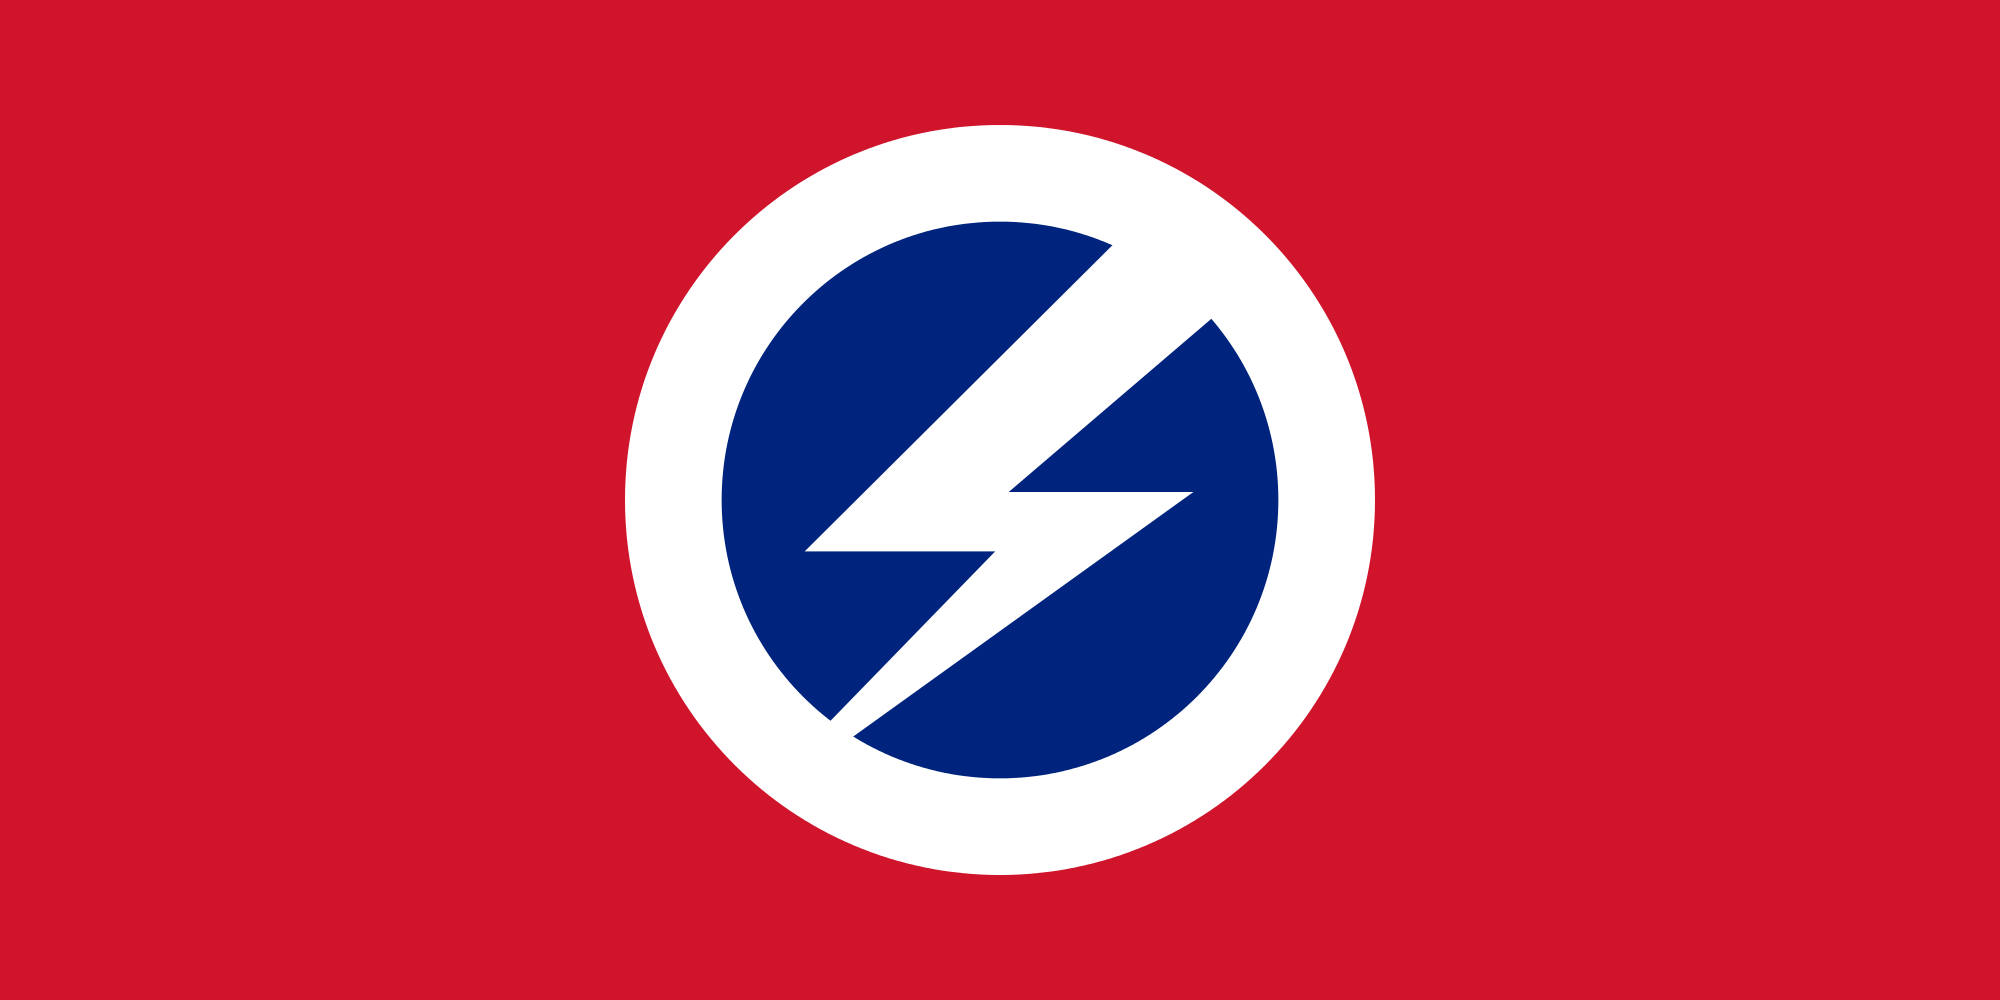 Guide to far right symbols brighton anti fascists the circled flash logo was first used by oswald mosleys british union of fascists in the 30s and 40s after the buf collapsed it passed out of use until biocorpaavc